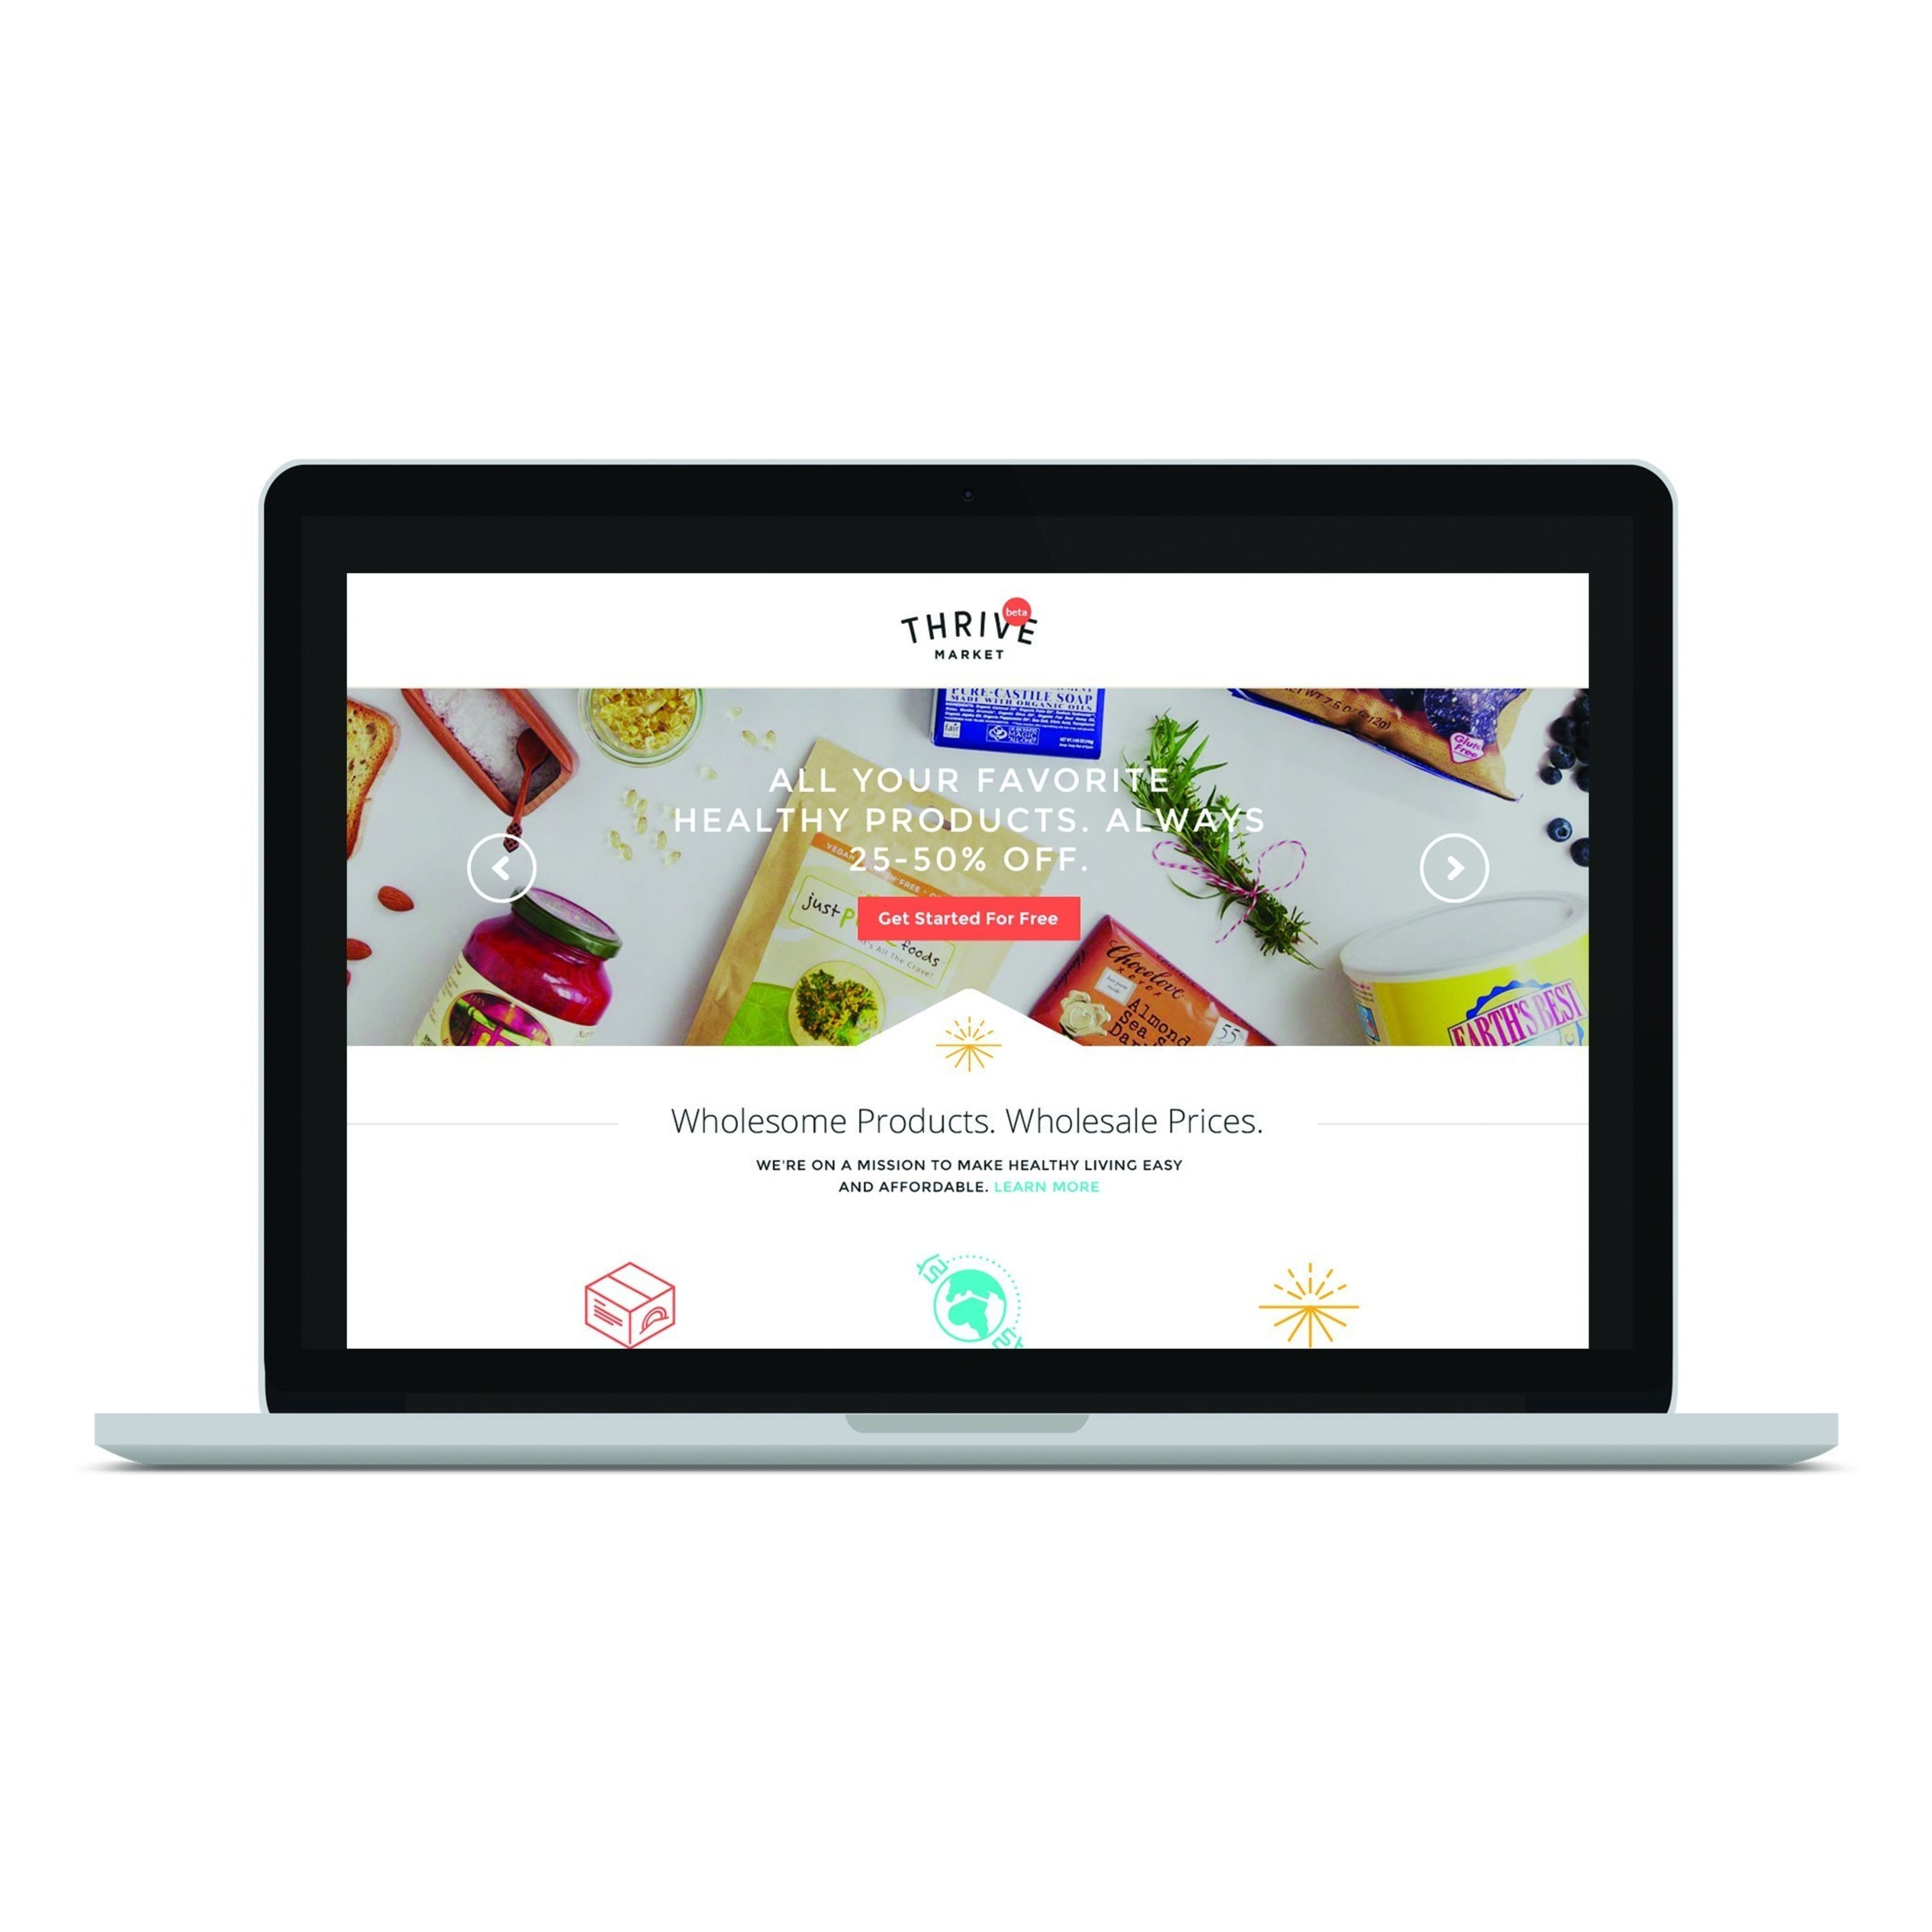 Thrive Market, the first socially conscious online store offering the world's best-selling natural and organic products at wholesale prices.